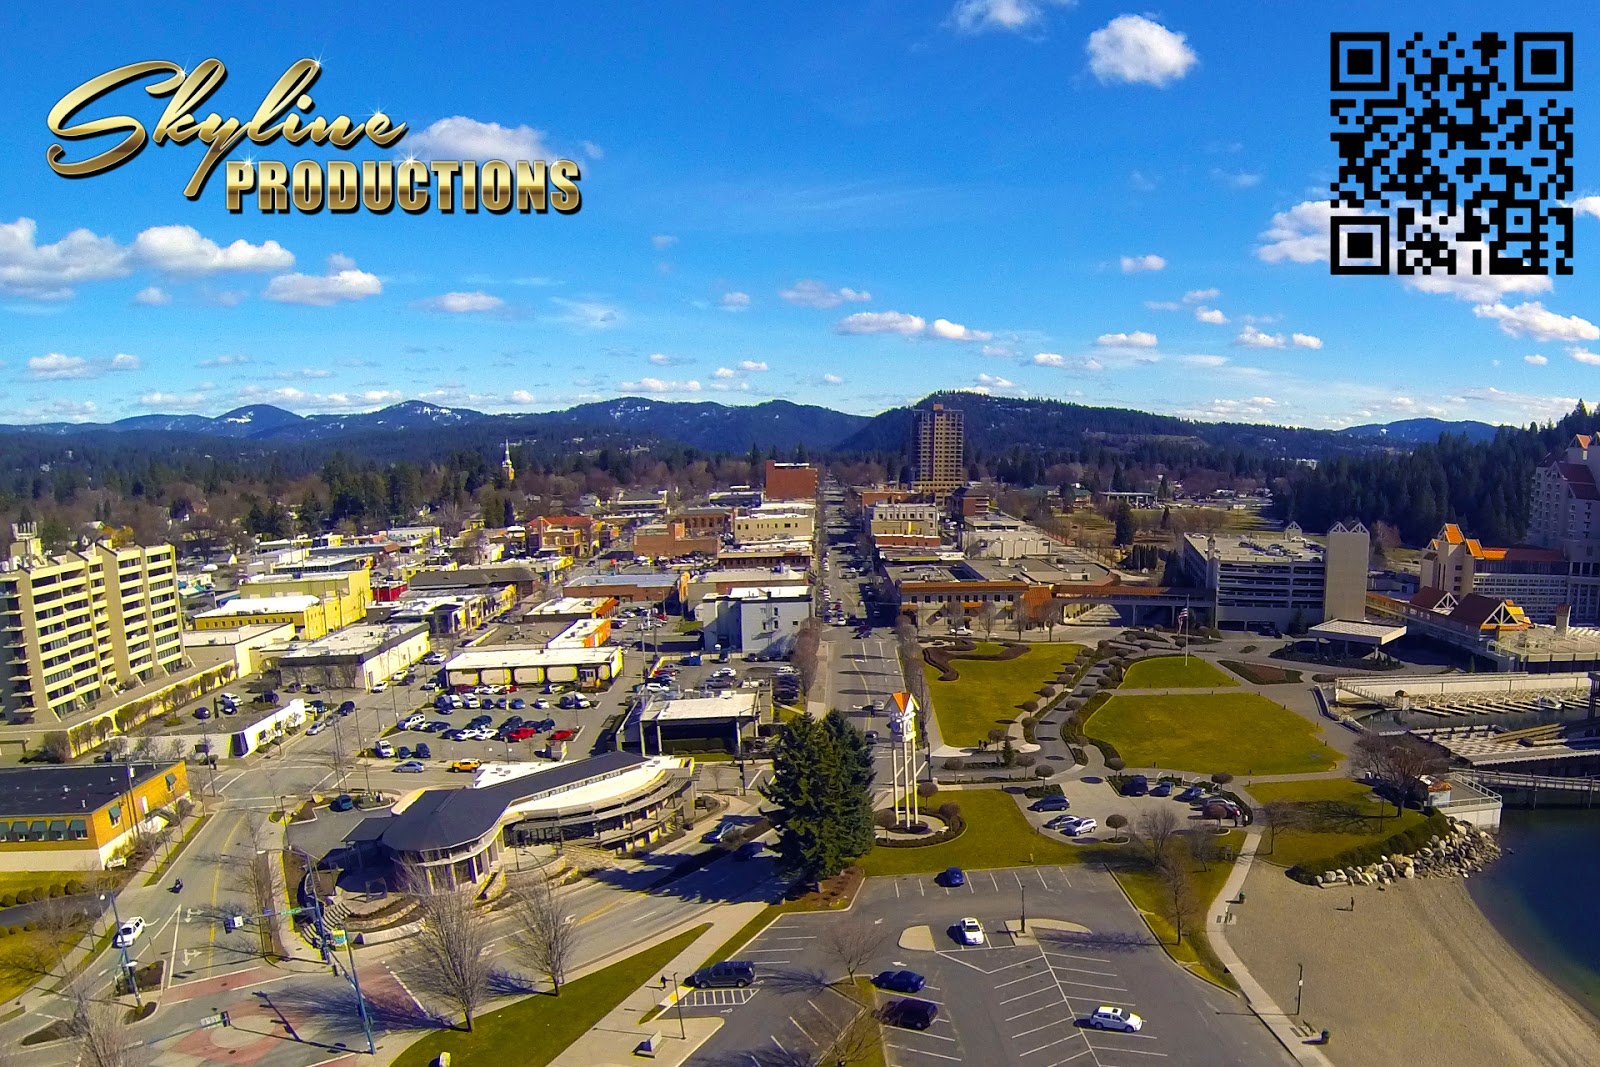 coeur d alene Compare 89 hotels in coeur d'alene using 6434 real guest reviews earn free nights and get our price guarantee - booking has never been easier on hotelscom.